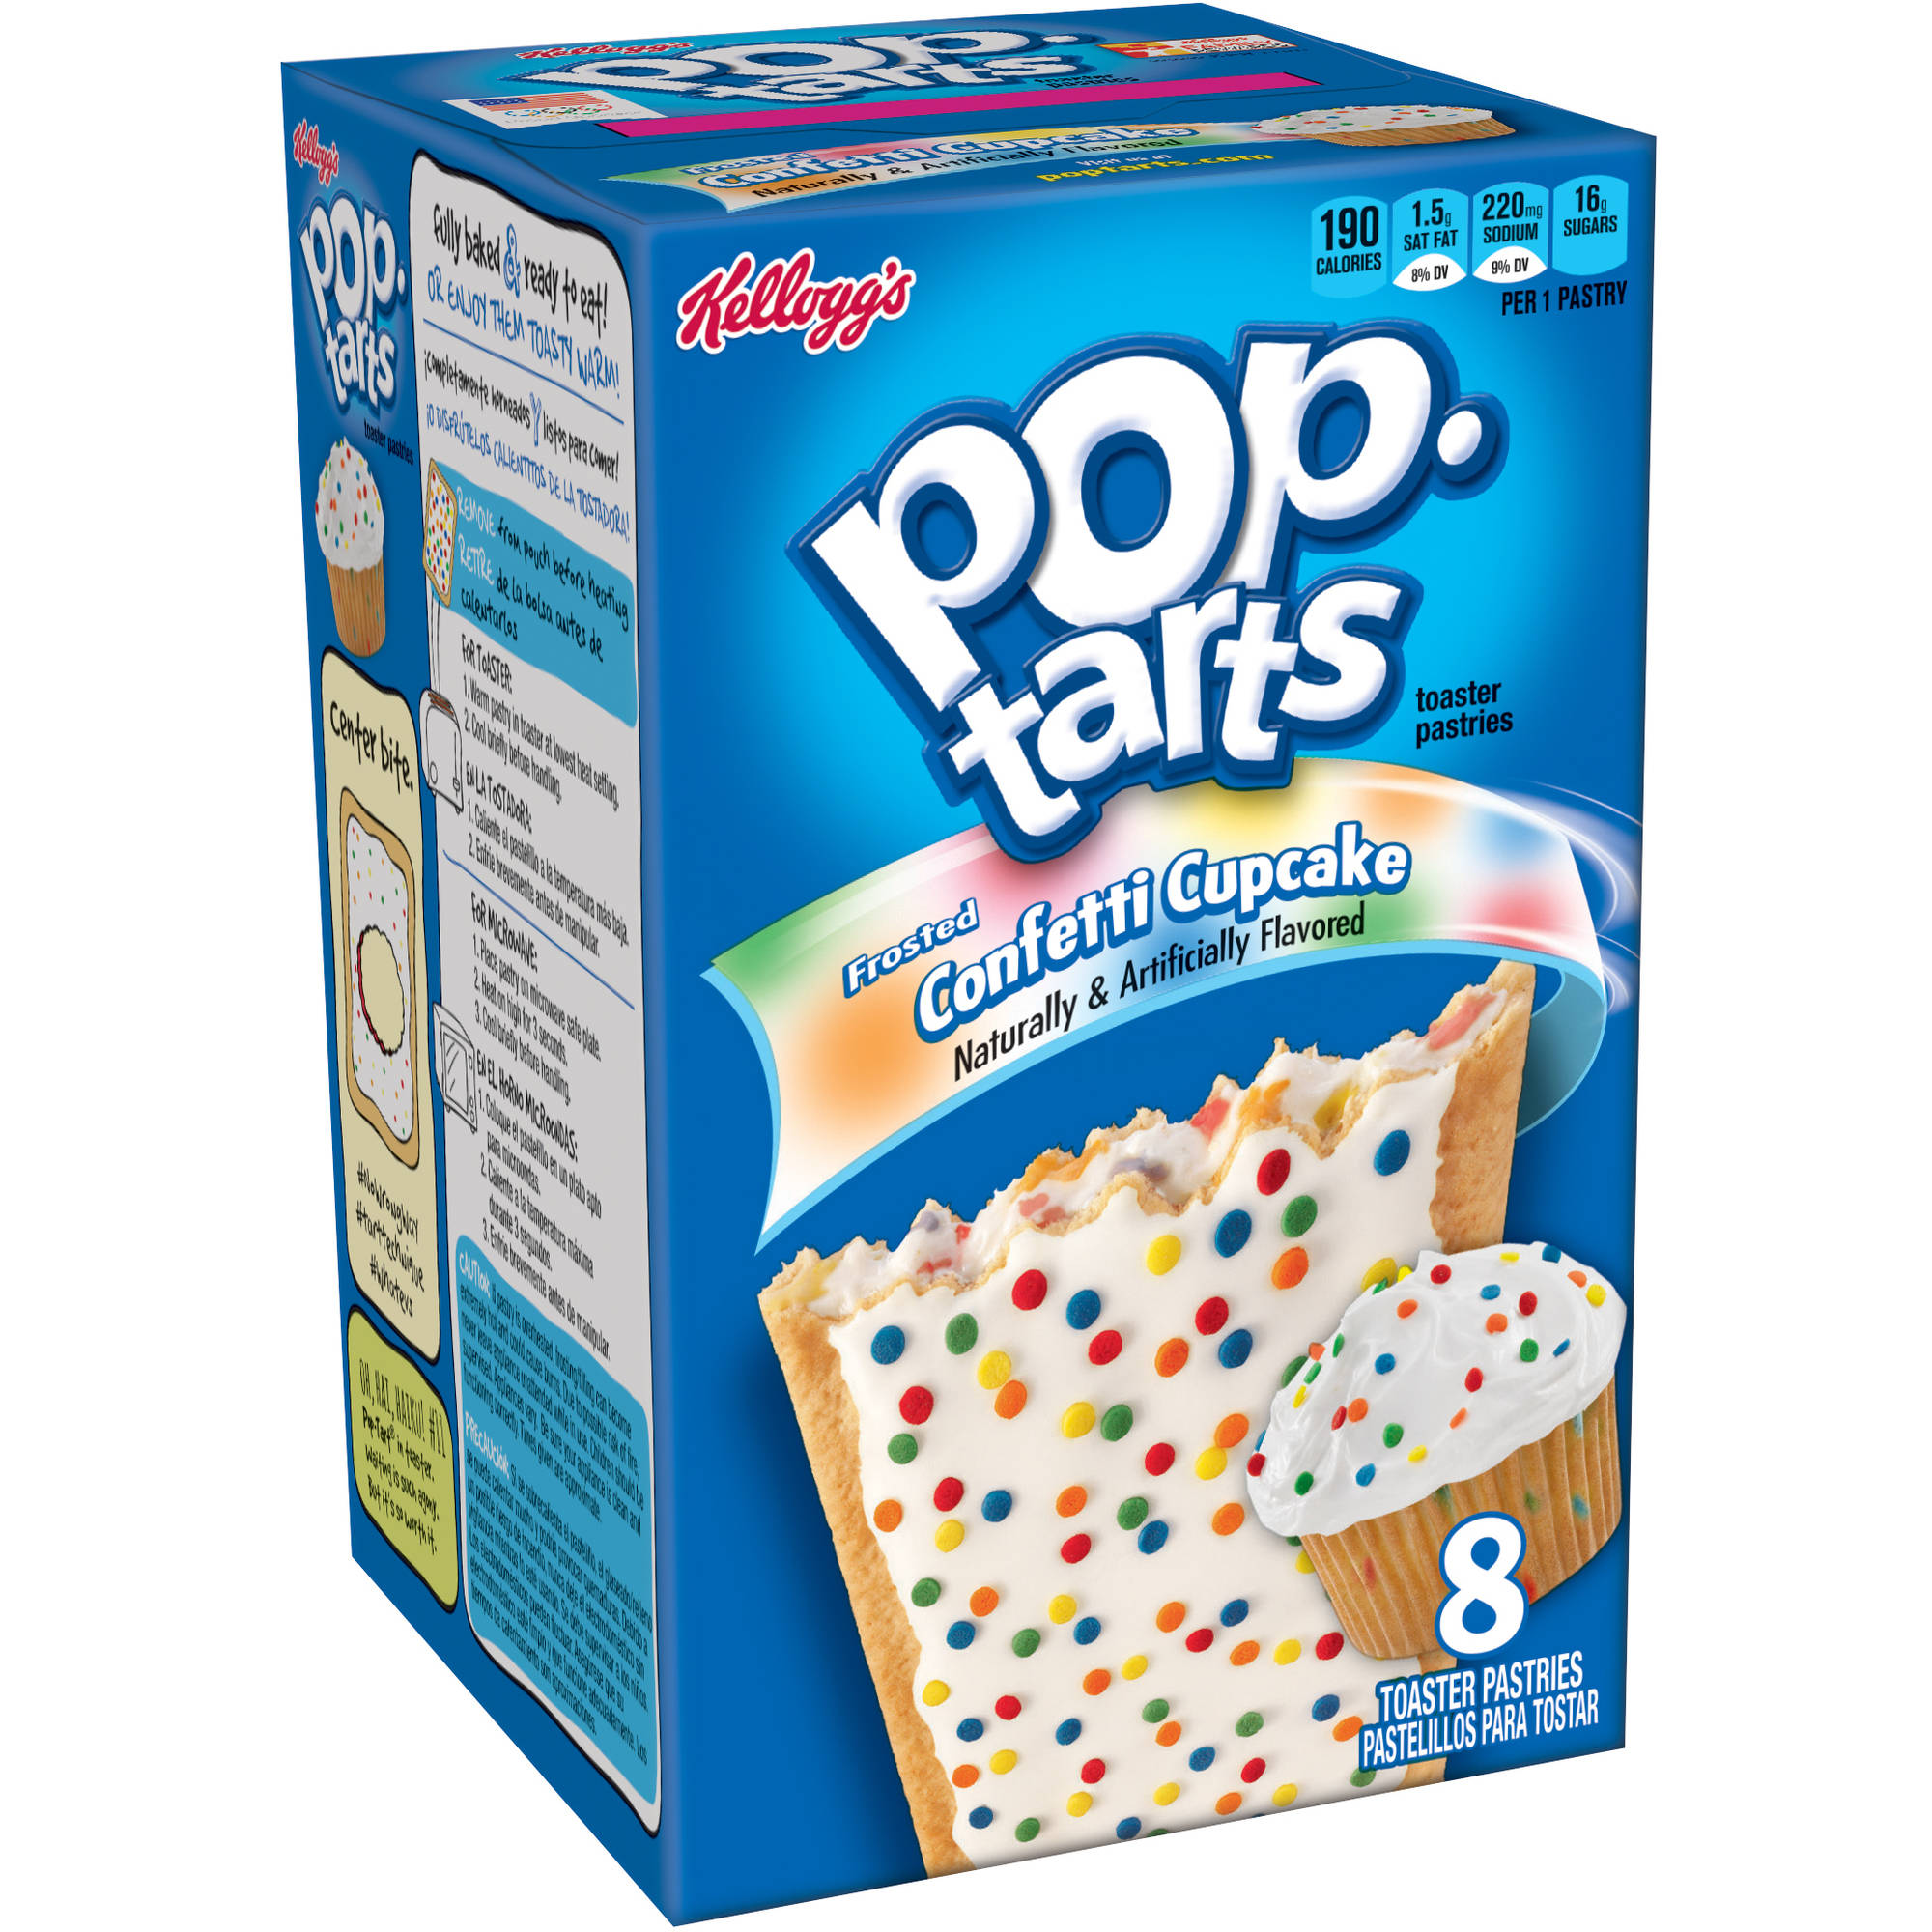 Kellogg's Pop-Tarts Frosted Confetti Cupcake, 8 count, 14.1 oz